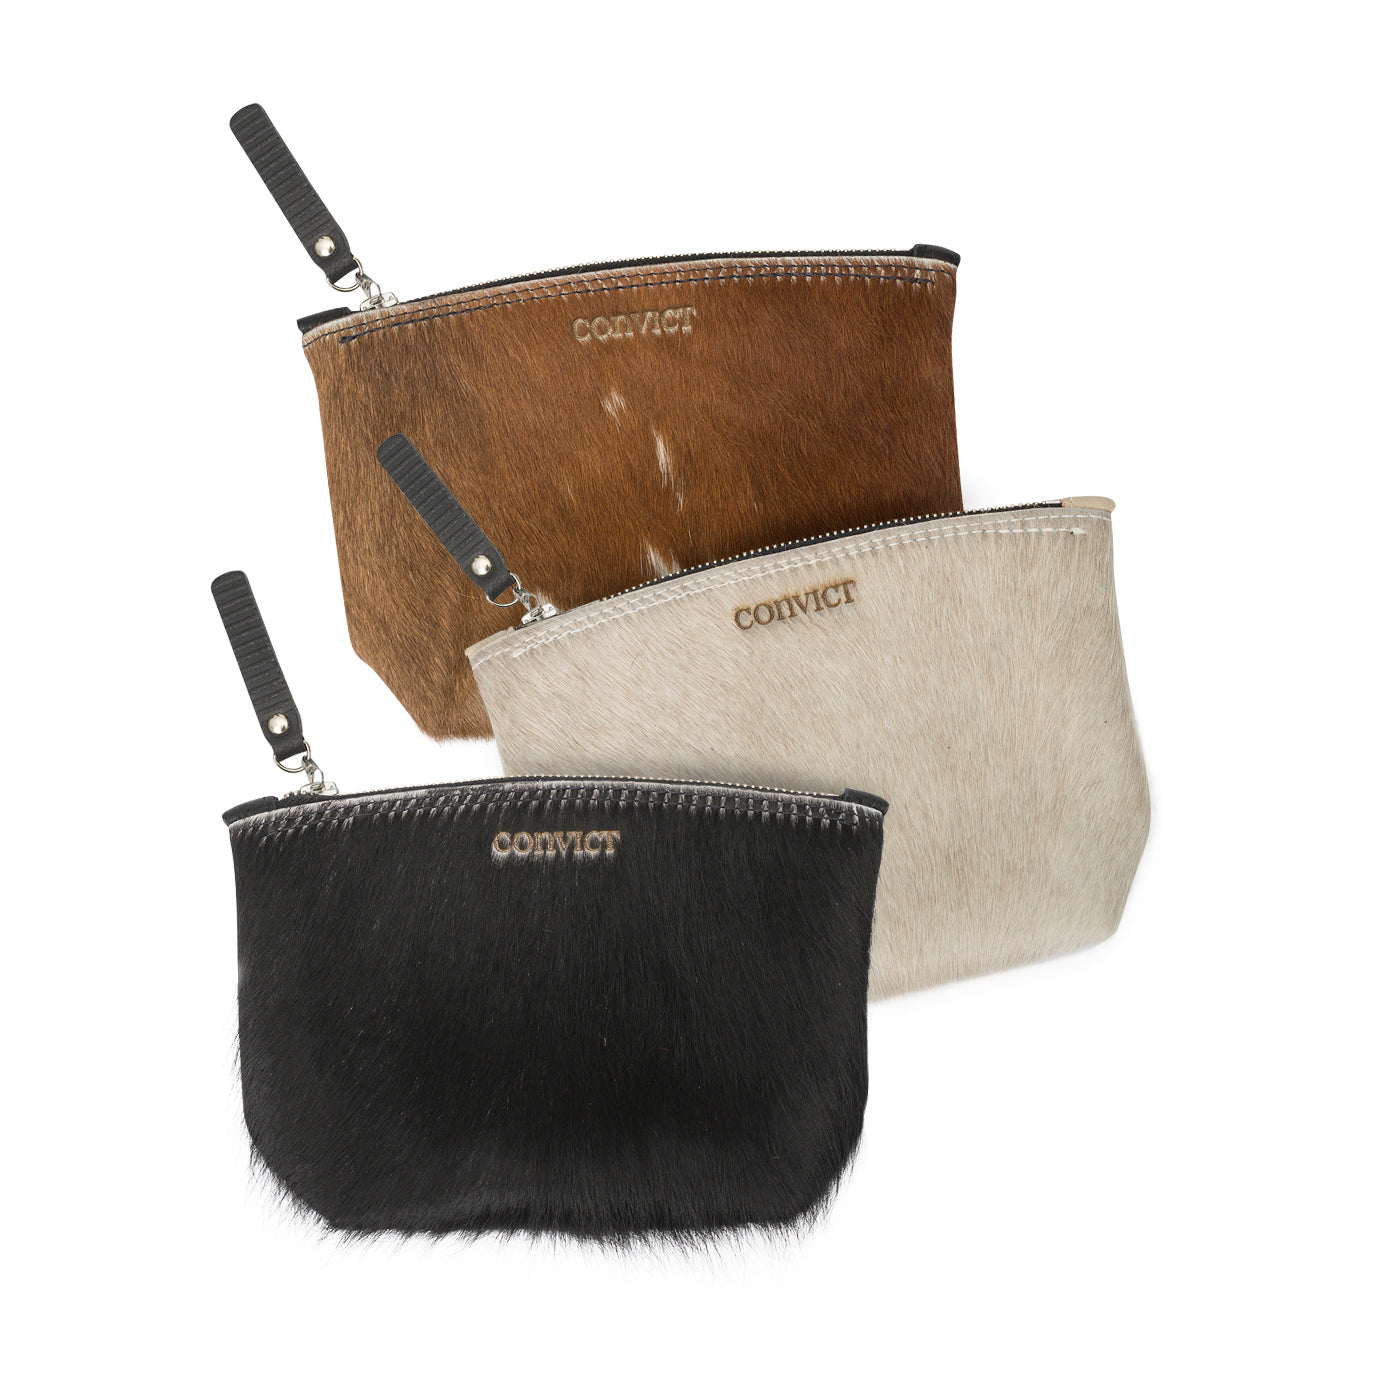 Convict Susannah cosmetic pouch collection cowhide